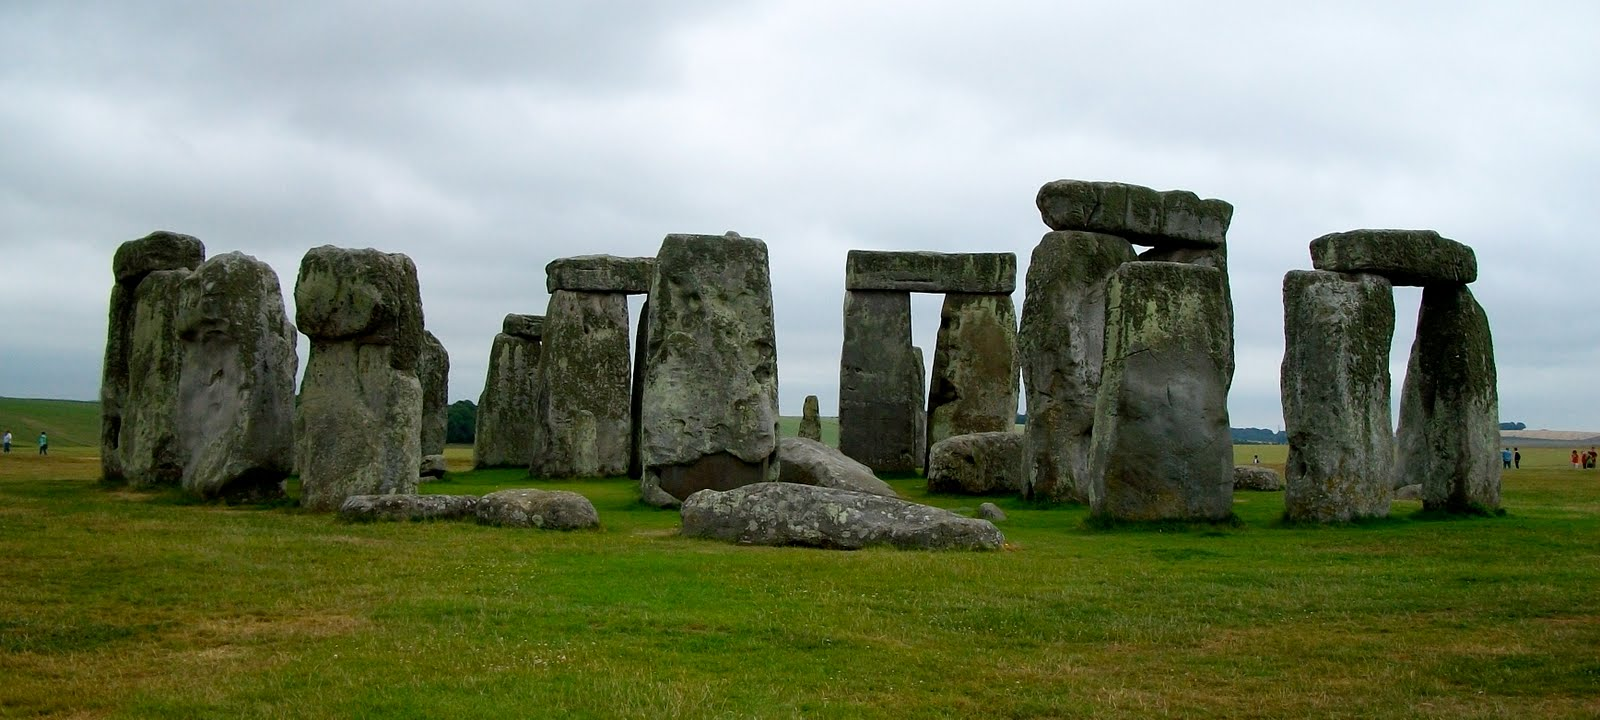 a study of stonehenge 10 facts about stonehenge appears in the archaeological study of henry of huntingdon in about ad 1130, and that of geoffrey of monmouth six years later.